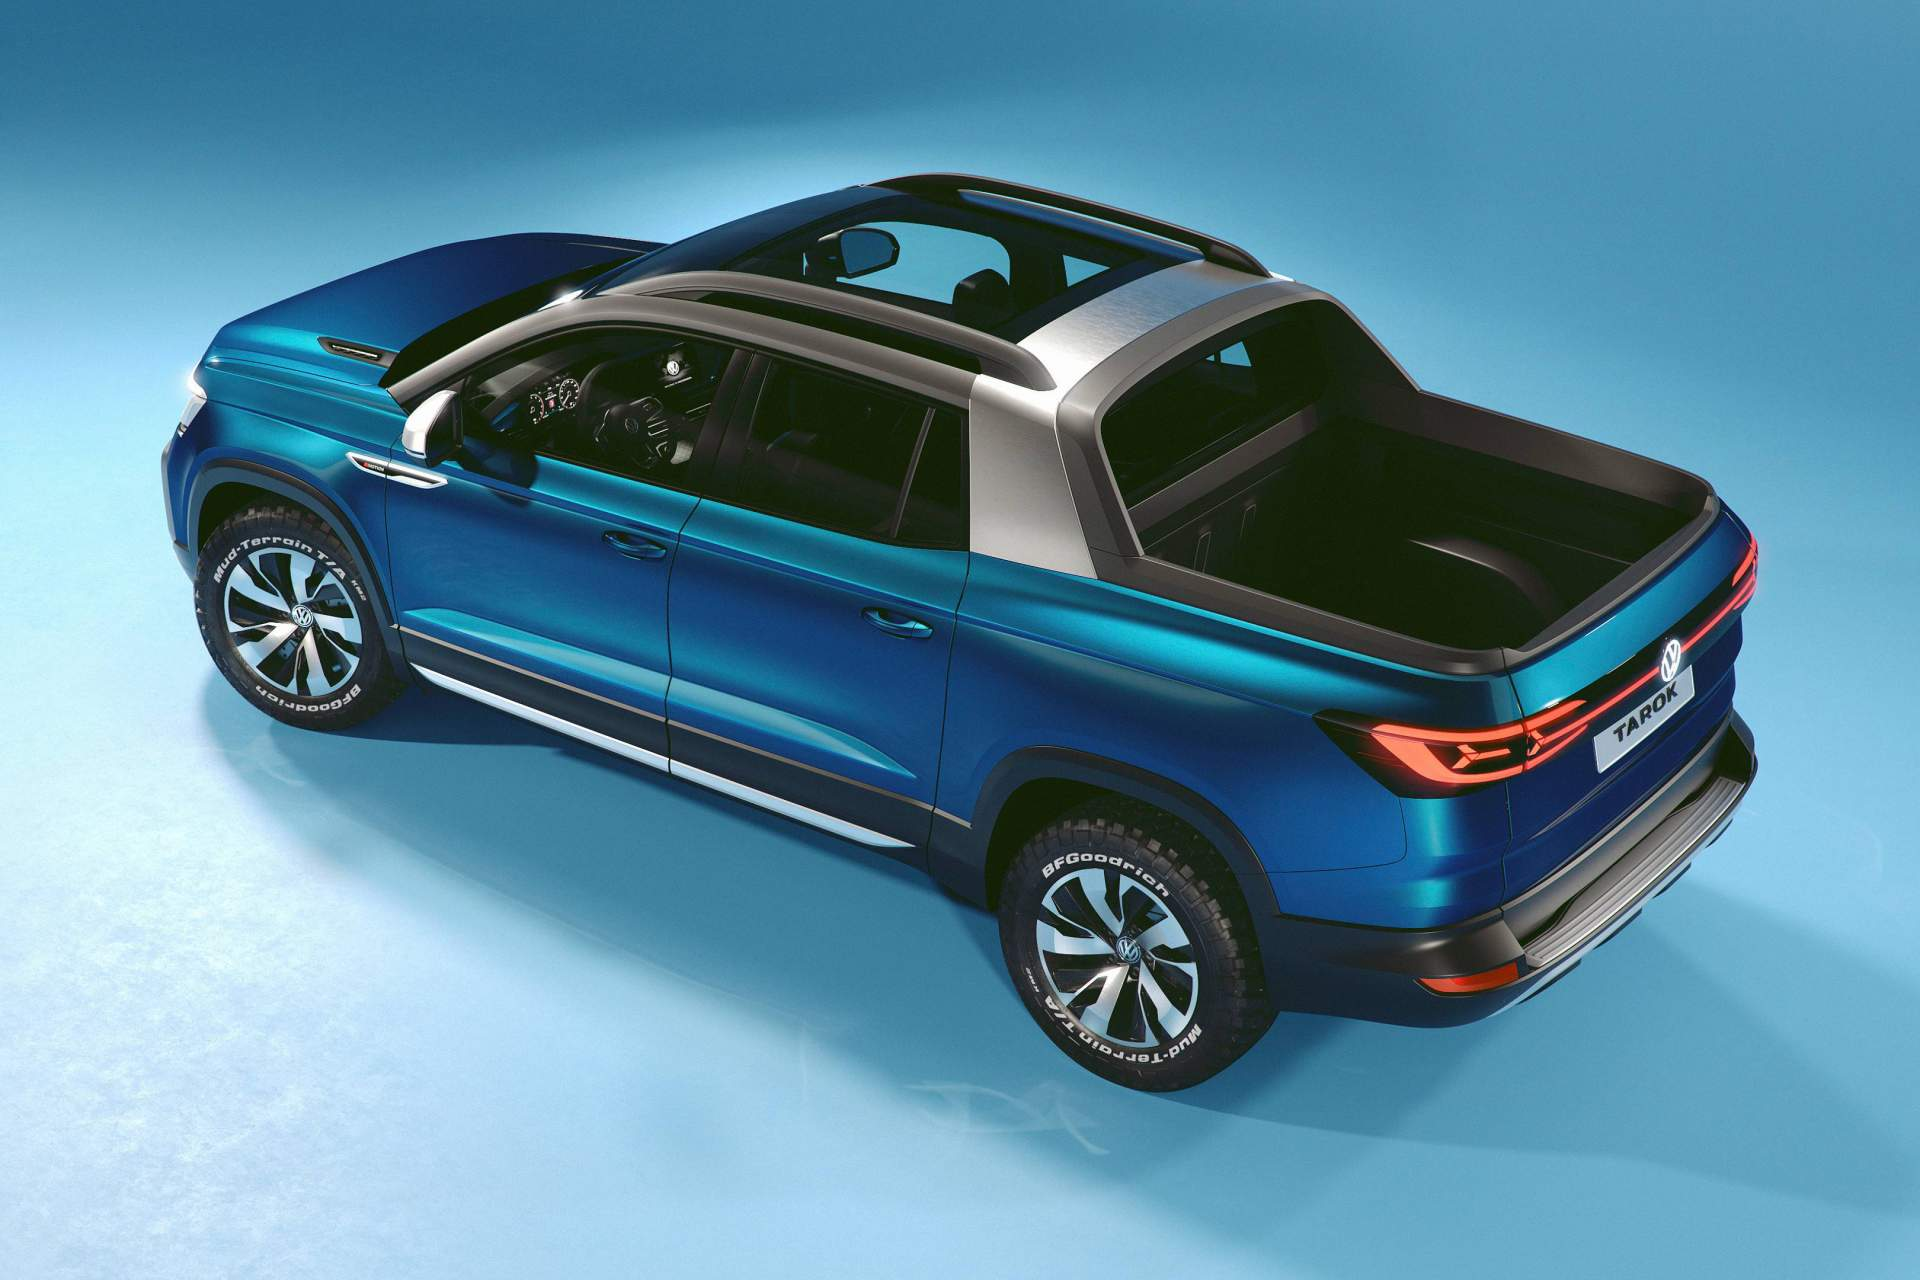 VW Tarok transforming pickup confirmed for production